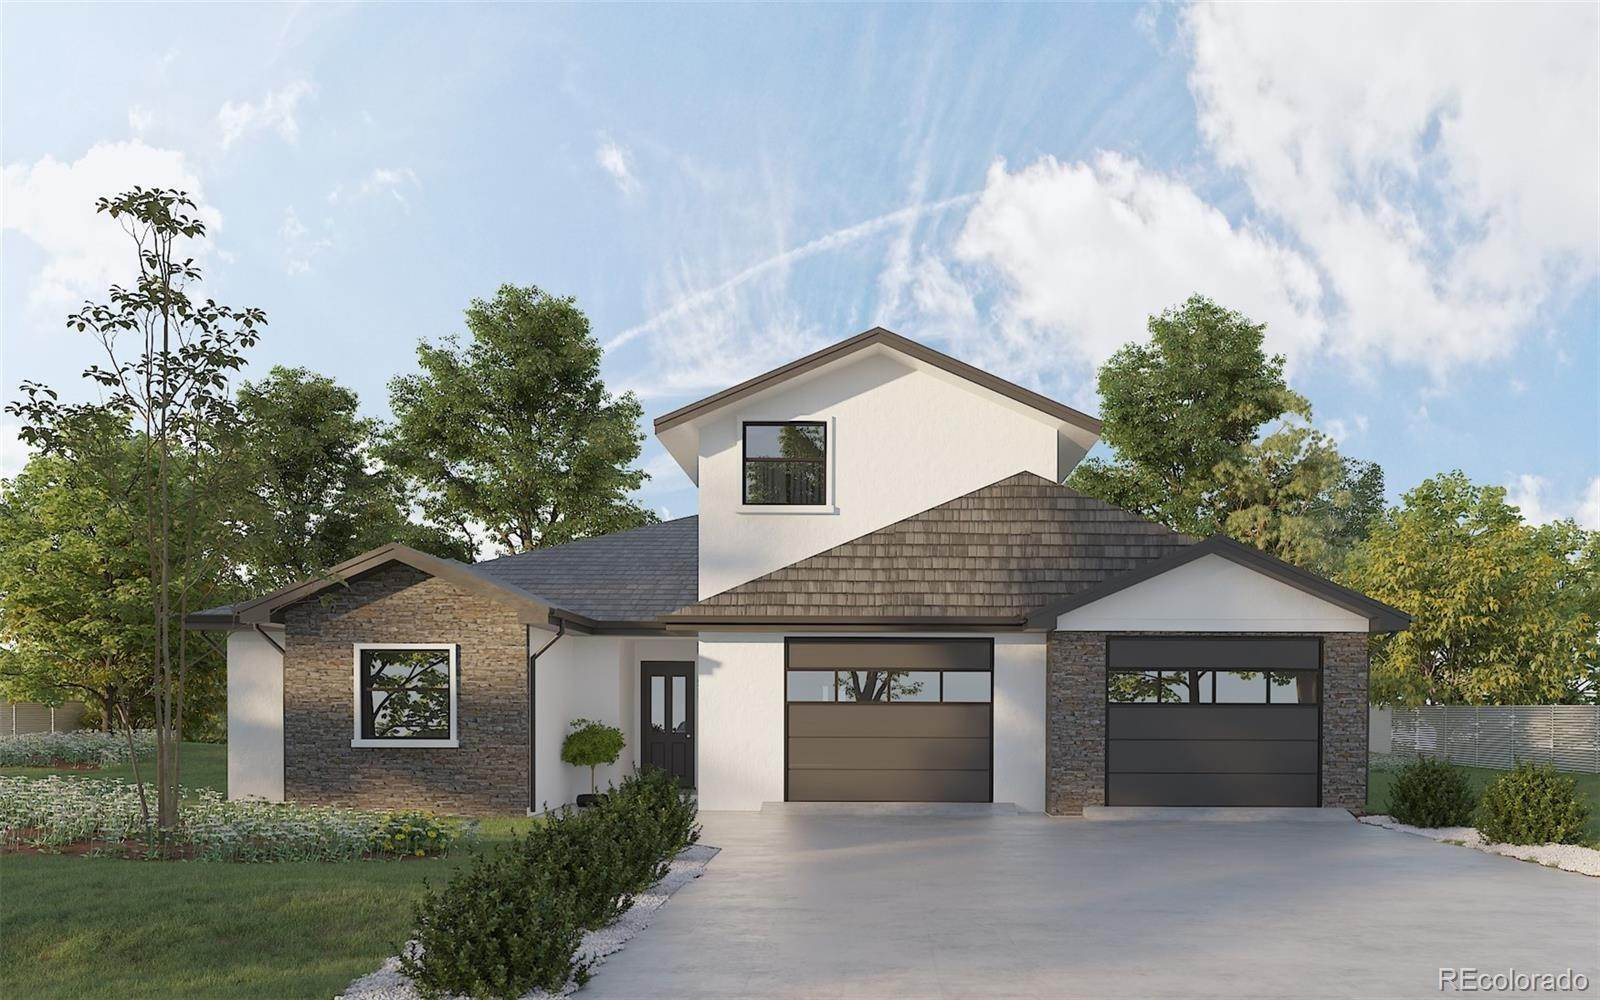 Single Family Homes for Sale at 913 Eves Court Fruita, Colorado 81521 United States